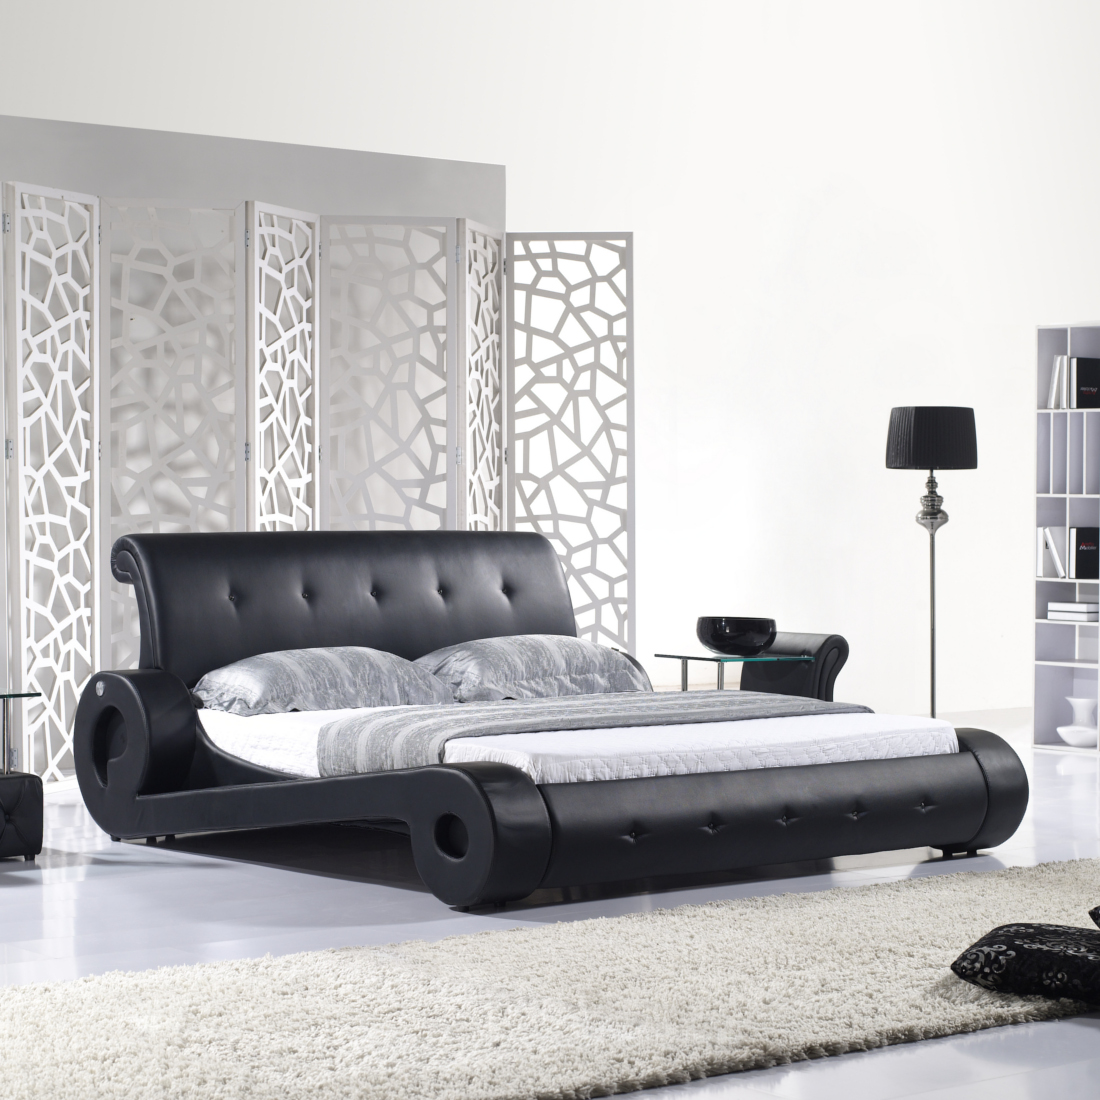 bett bettgestell lederbett polsterbett diangelo 140x200 doppelbett bett d0b ebay. Black Bedroom Furniture Sets. Home Design Ideas